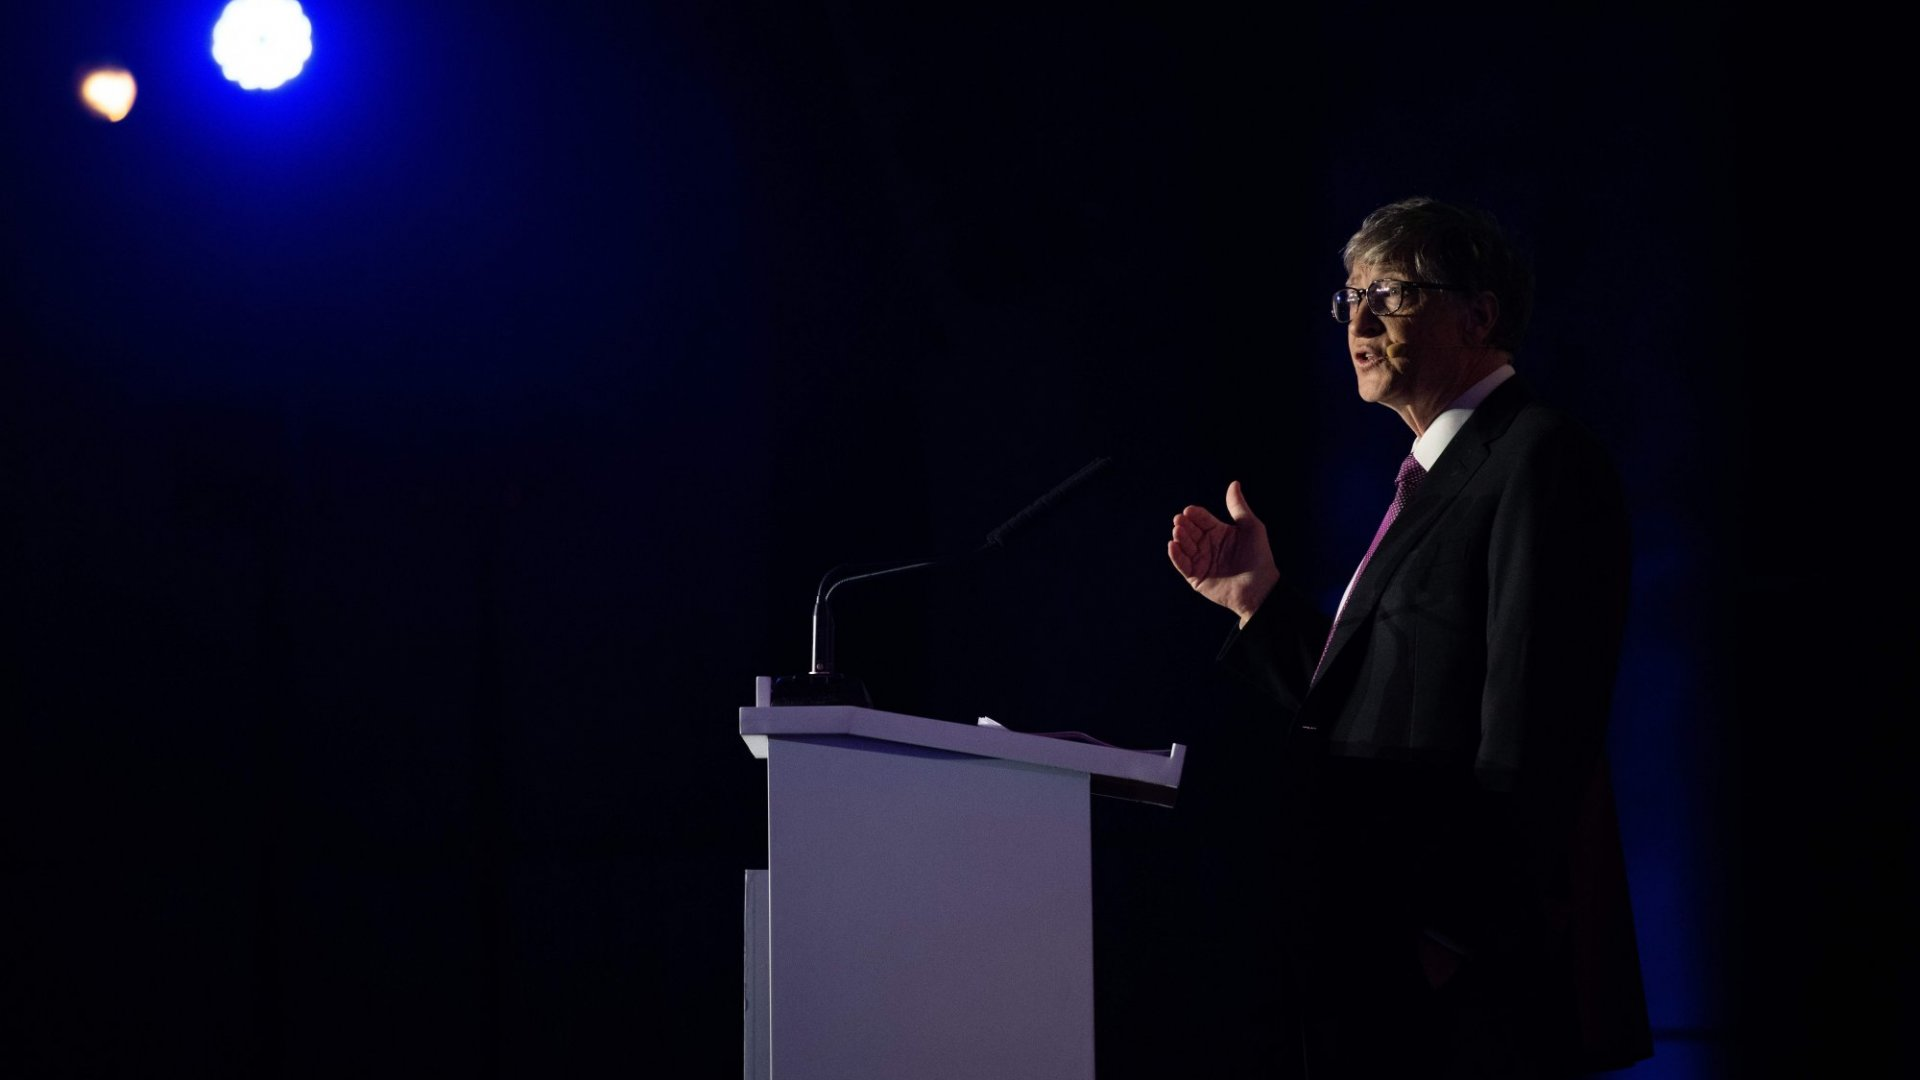 10 Books About Tech You Should Read Right Now, According to Bill Gates